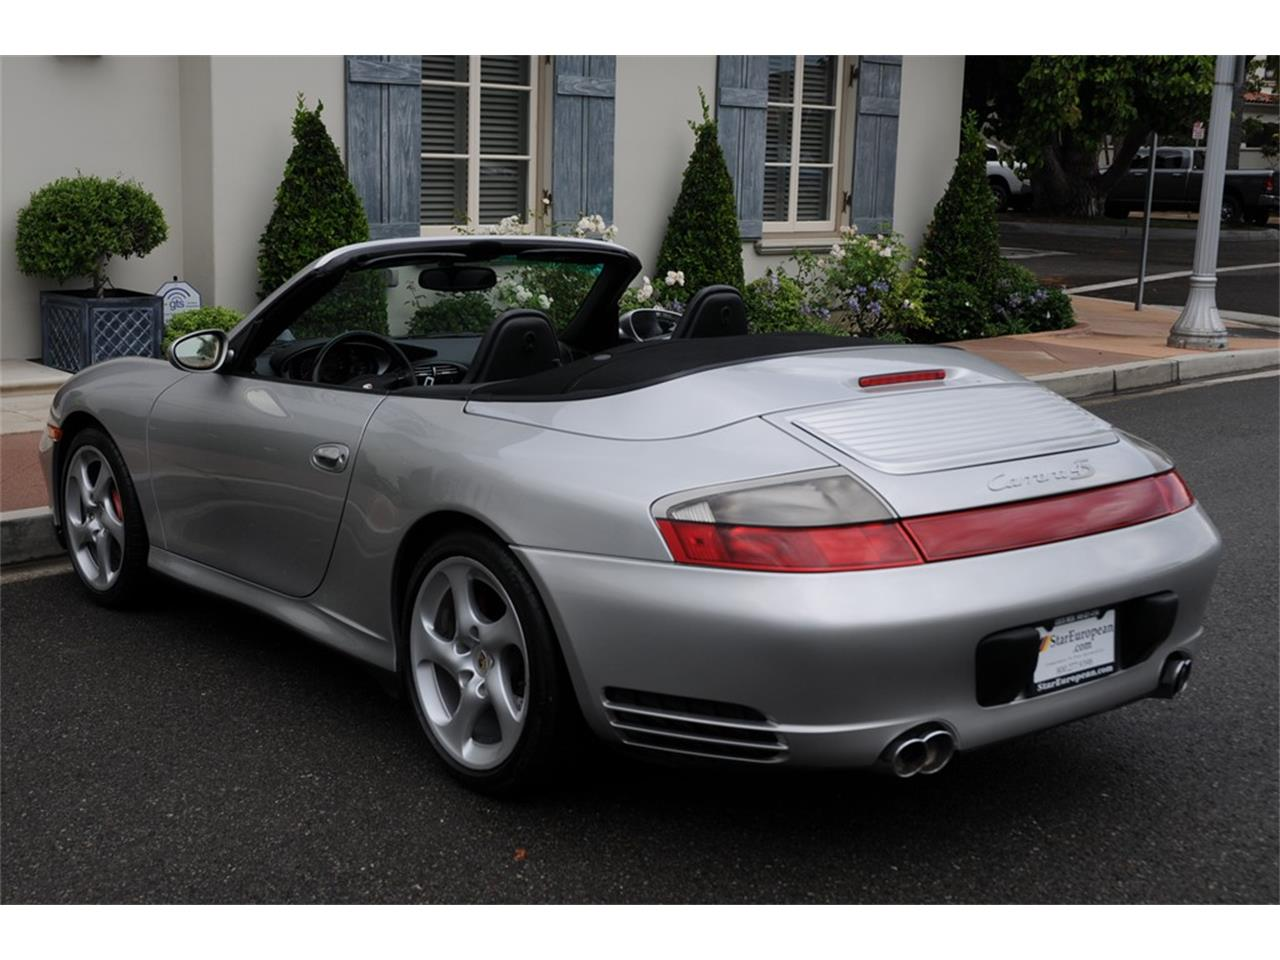 Large Picture of '04 Porsche 911 Carrera 4S Cabriolet located in California - $32,990.00 Offered by Star European Inc. - QK9K